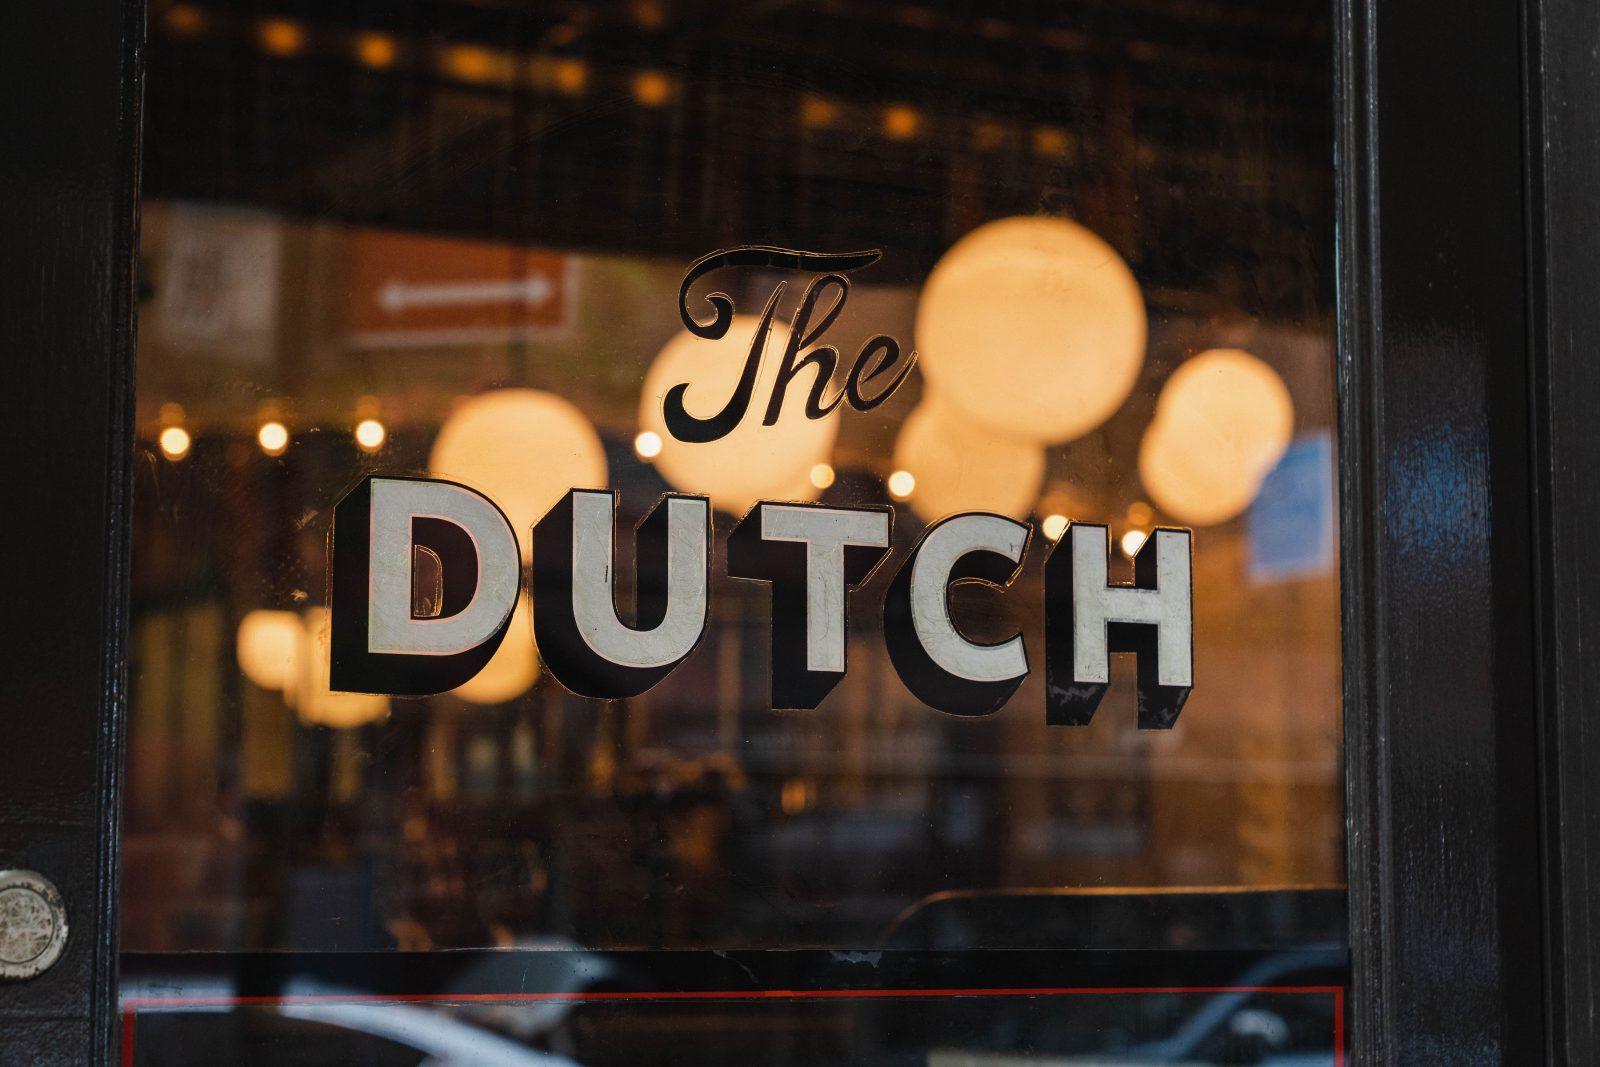 The Dutch Restaurant sign and logo featured with background lighting. Picture featured in the online Nashville magazine editorial: The Nashville Edit